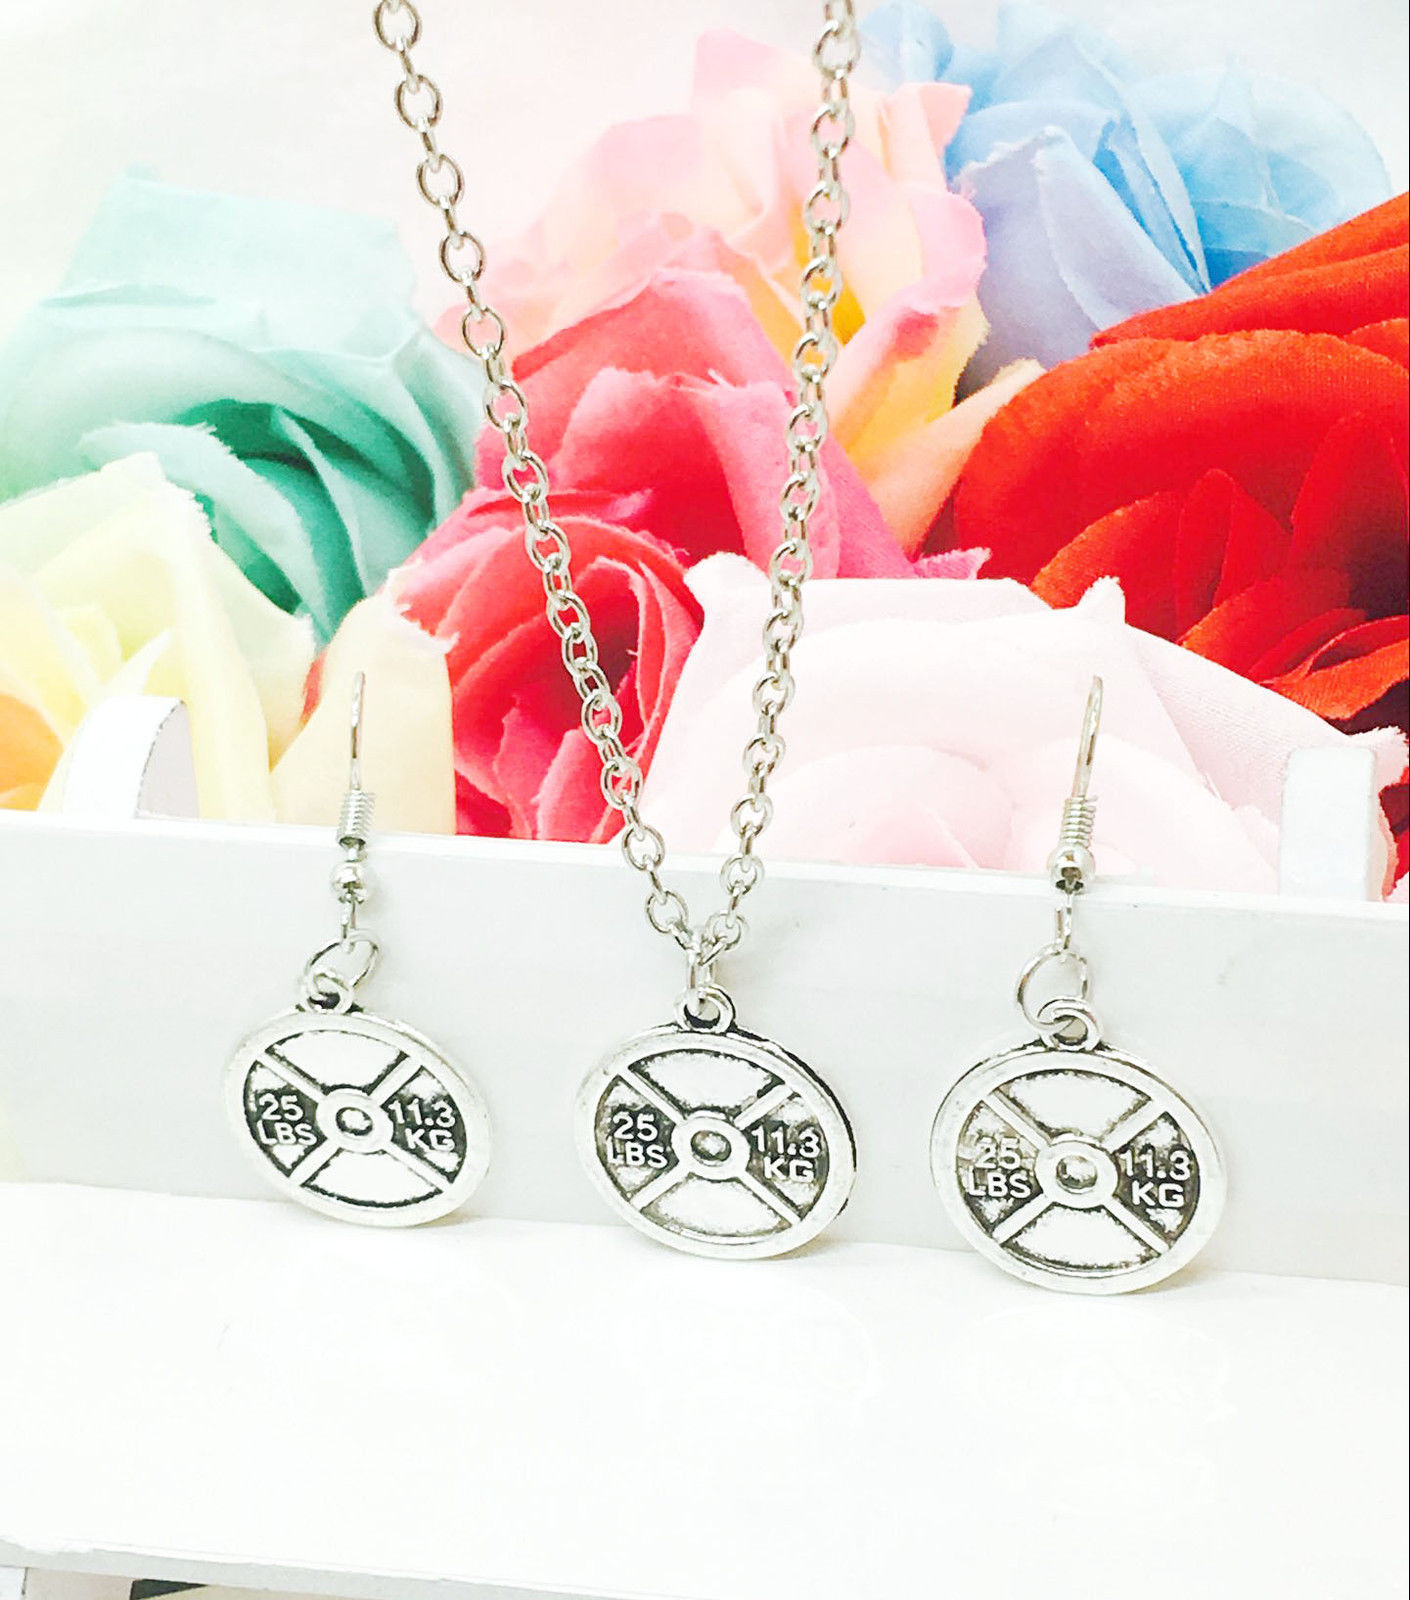 Hot Antique Silver 25 LBS 11.3KG Fitness Weightlifting Charms Pendant Necklace Earrings Set Creative Women Jewelry Holiday Gift